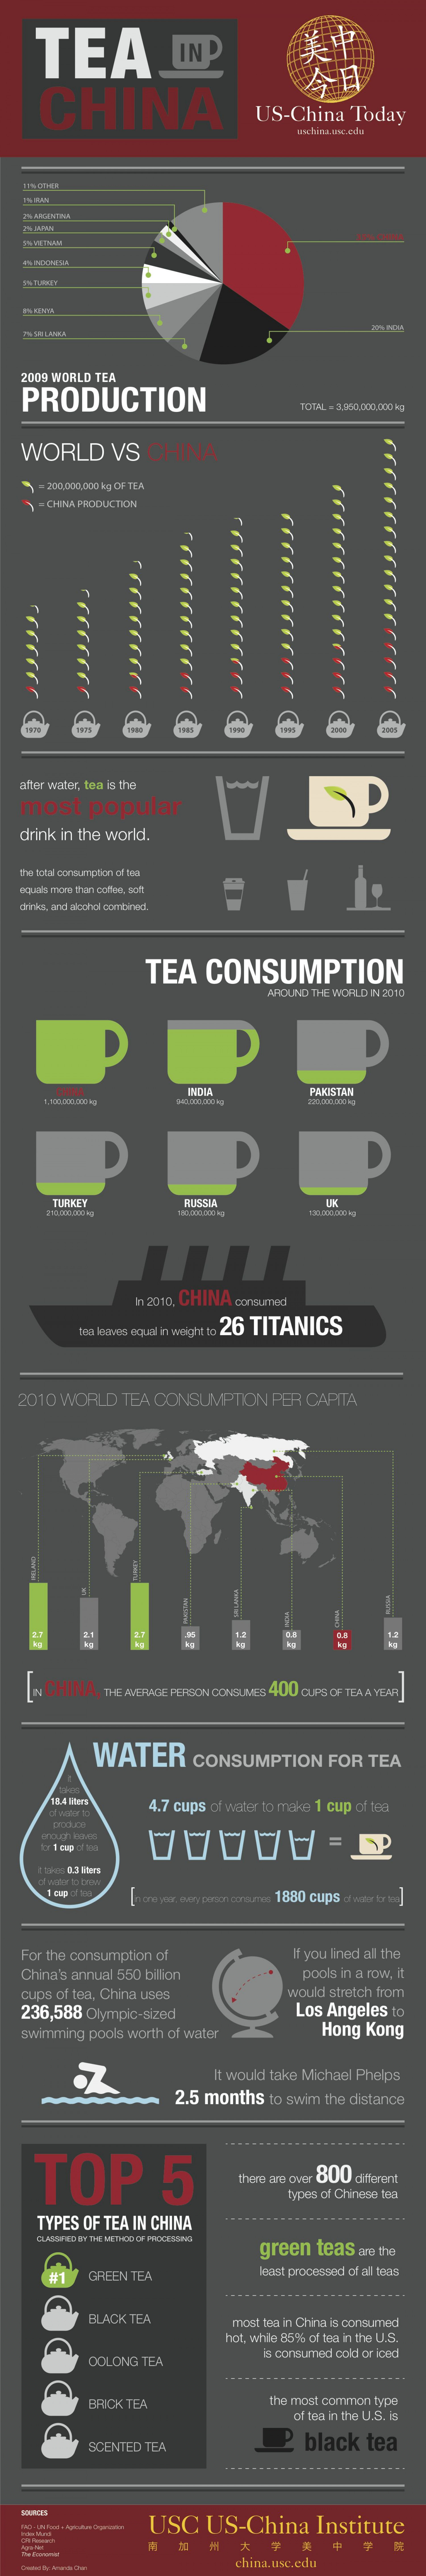 Tea in China Infographic